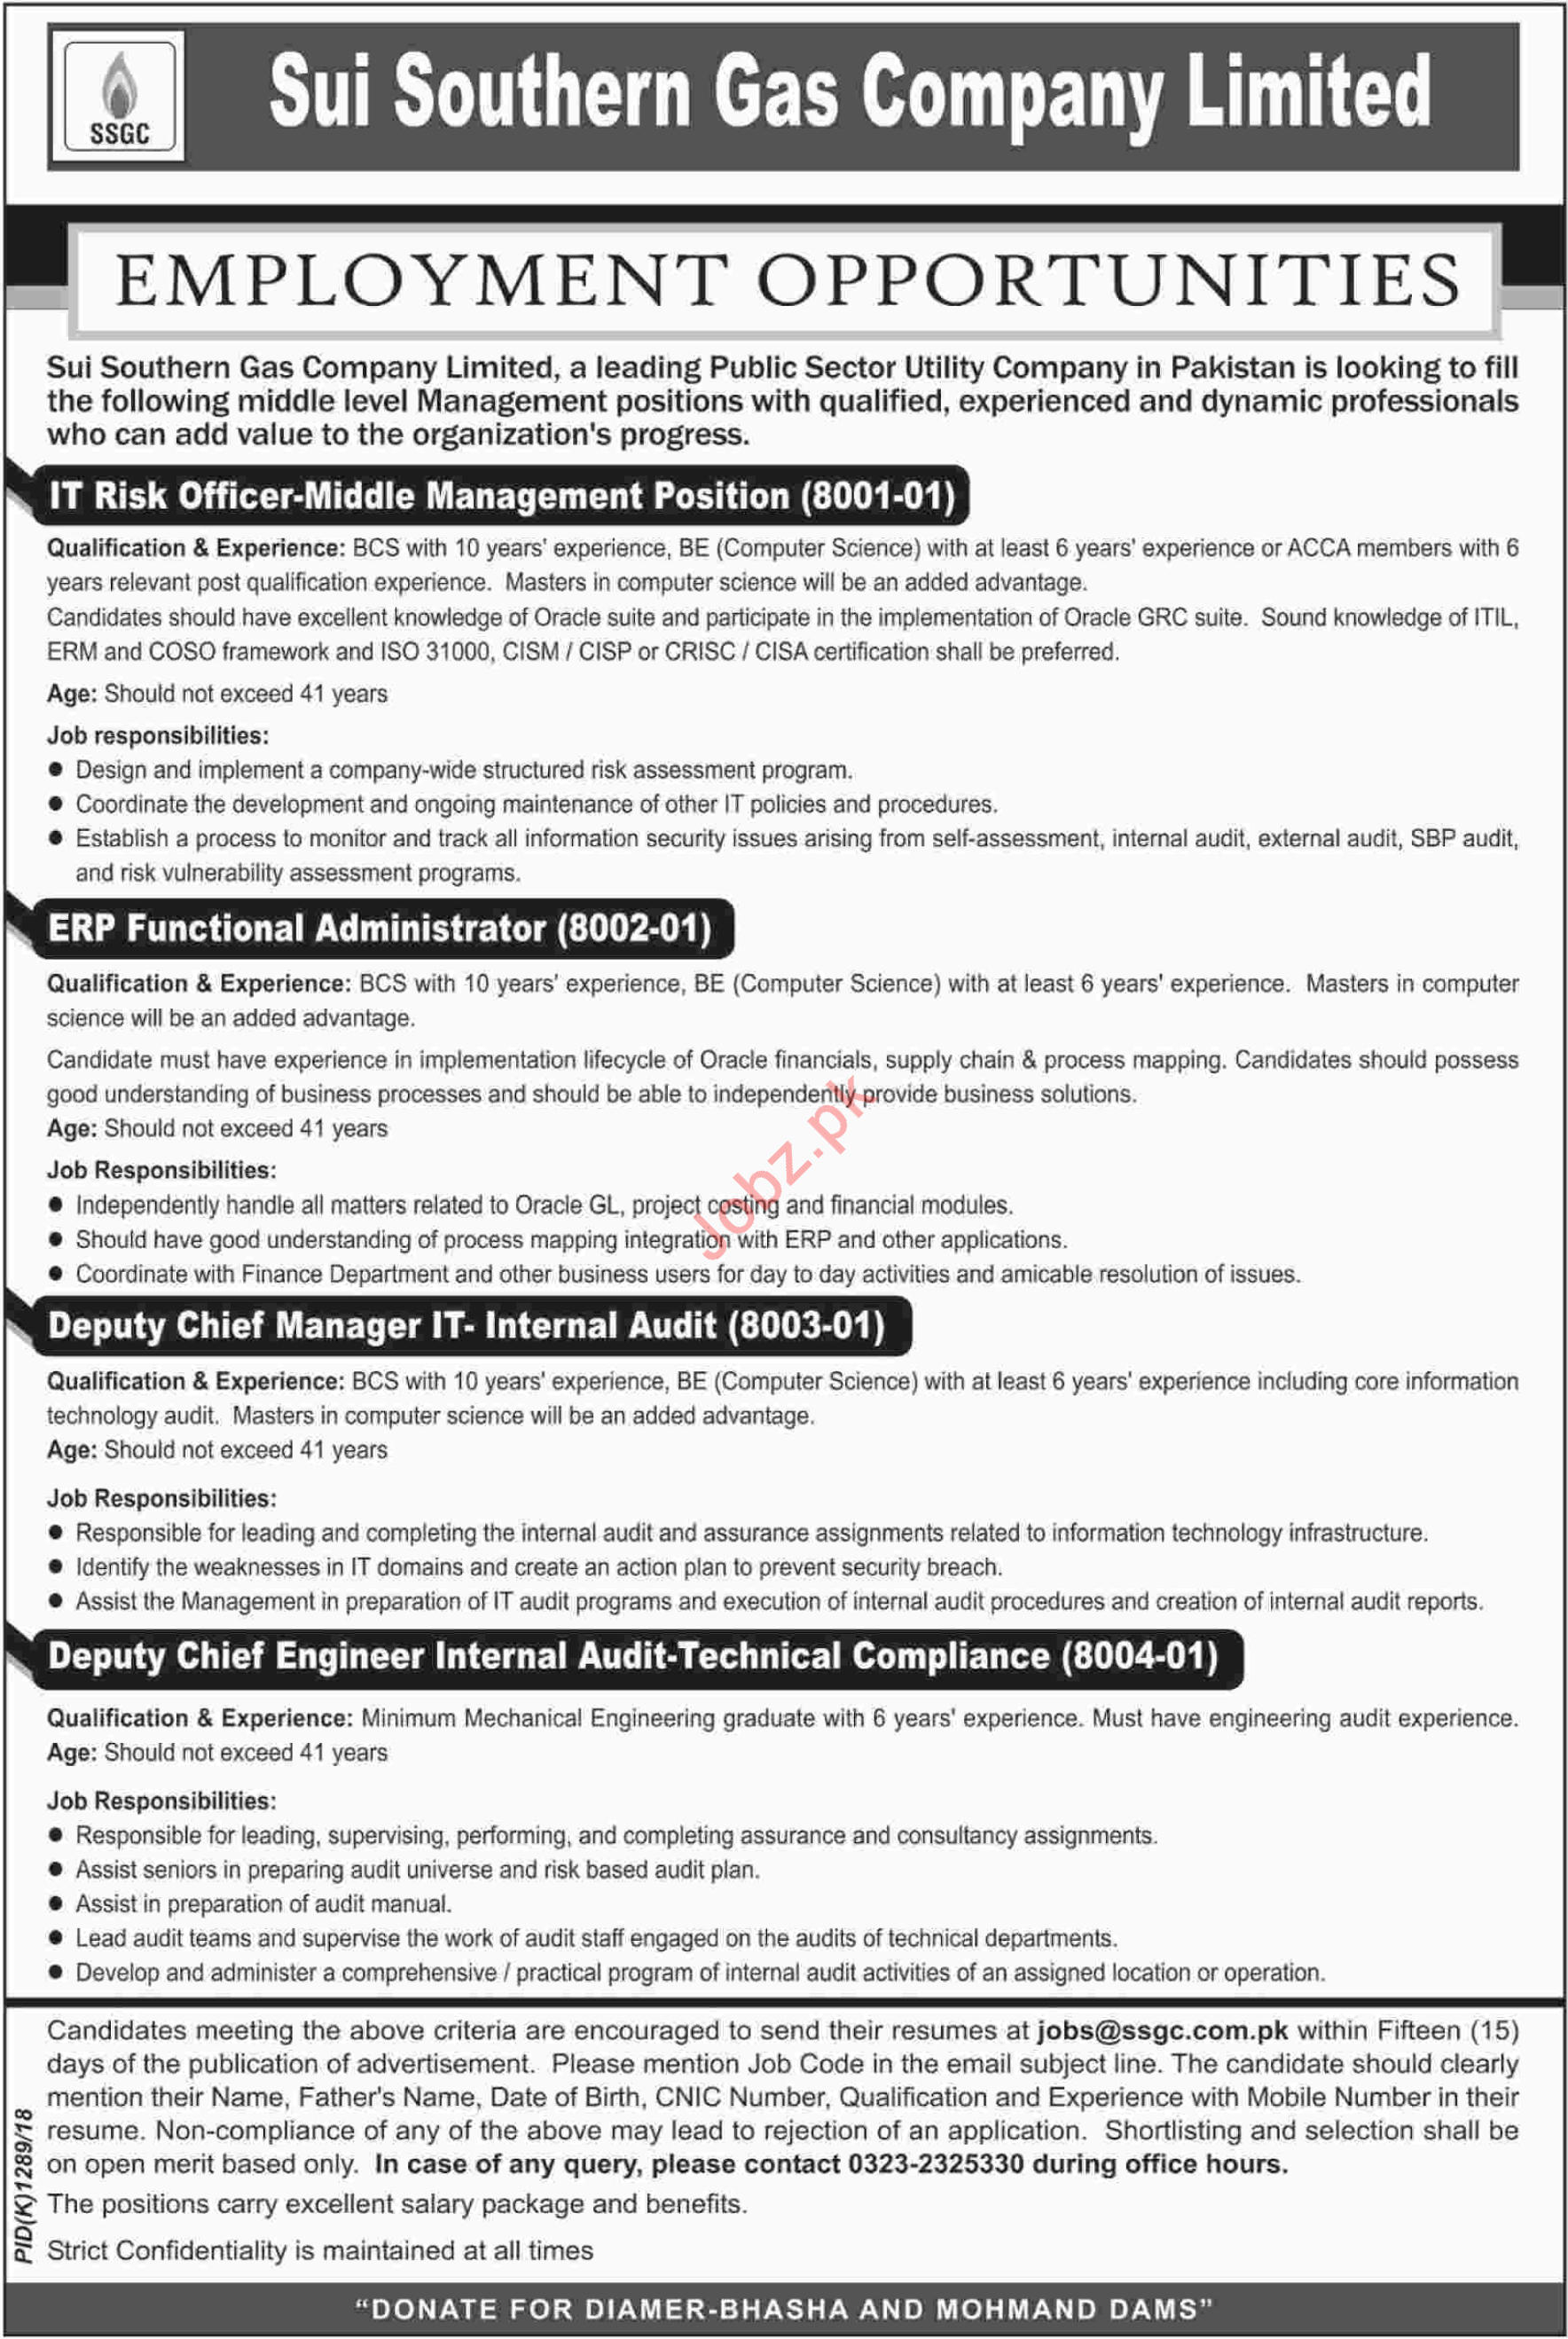 Sui Southern Gas Company Ltd IT Risk Officer Jobs